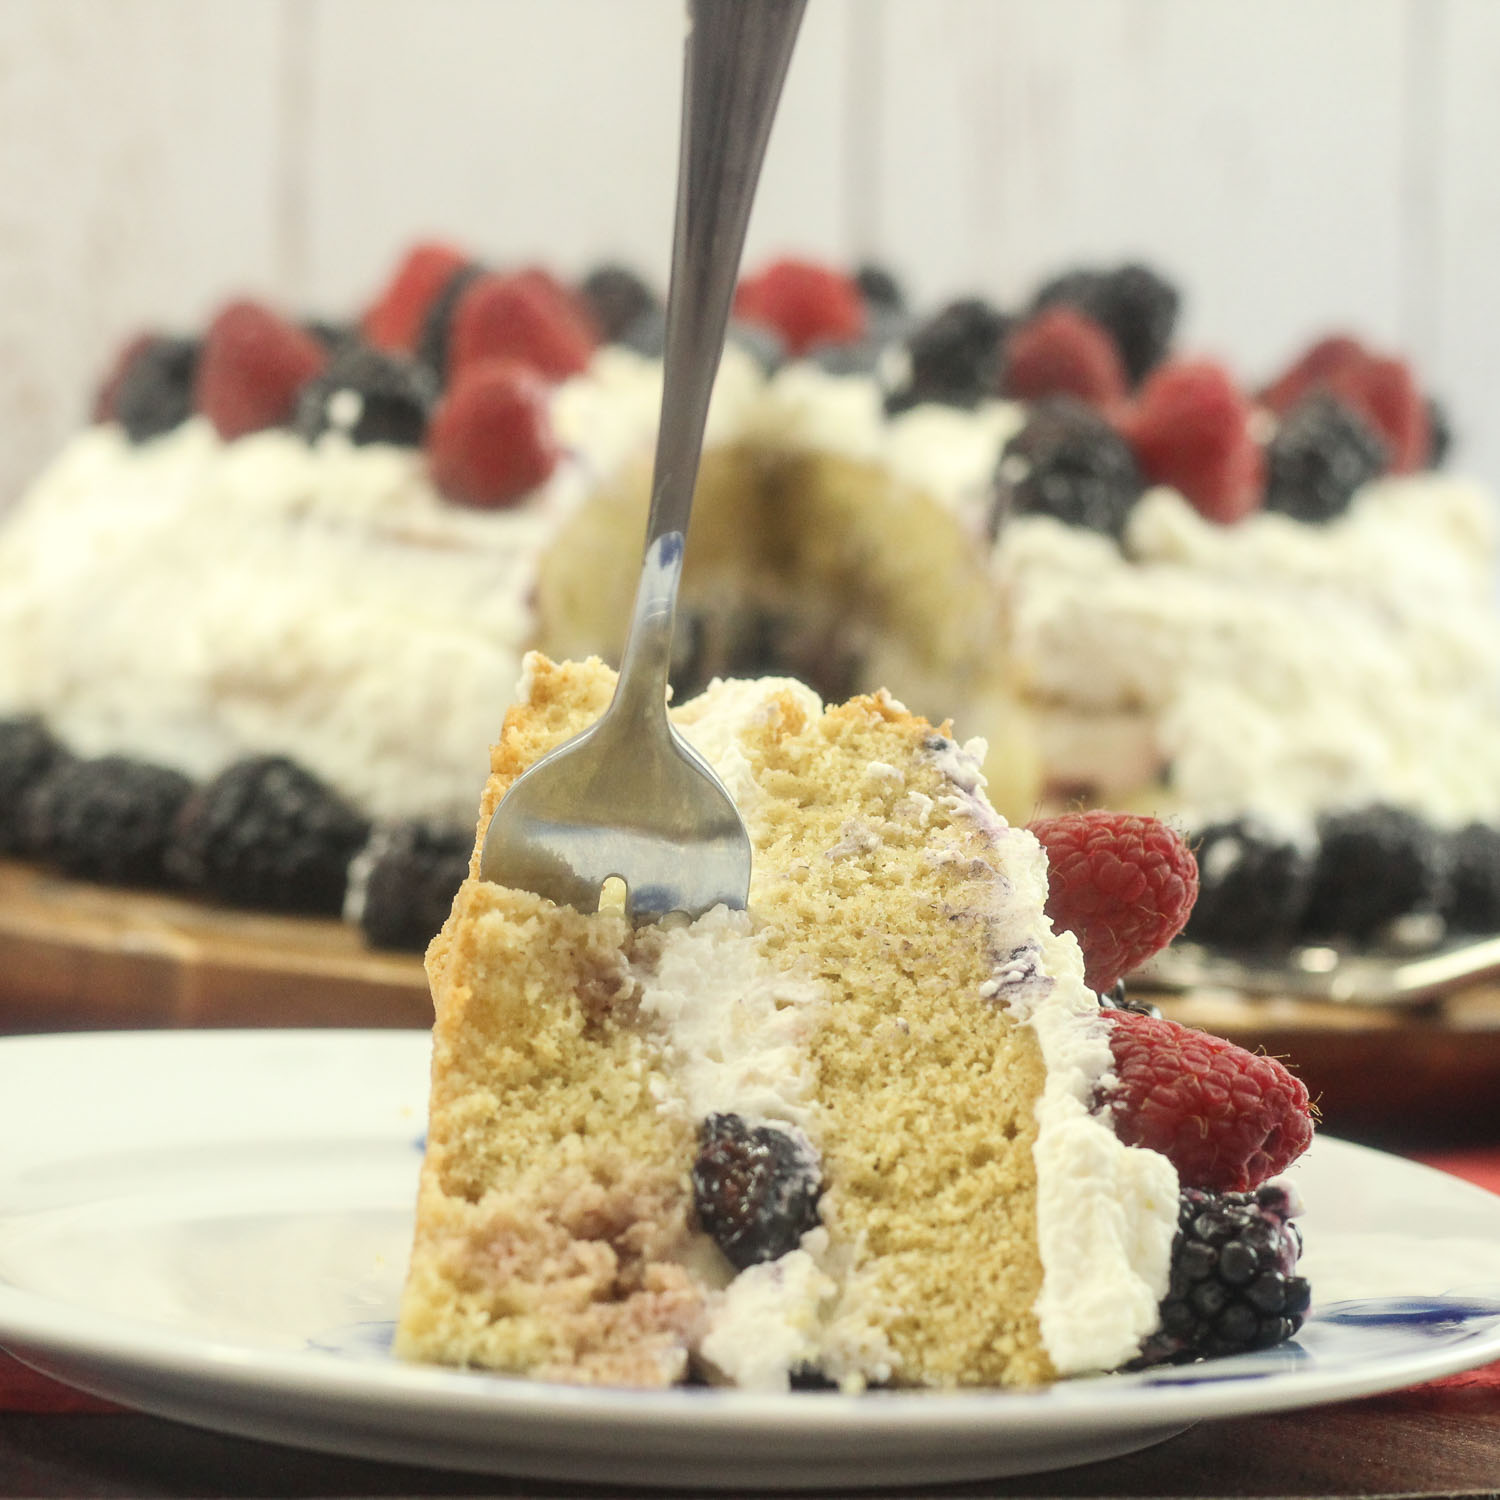 Layered Cream Cake with Fresh Berries.